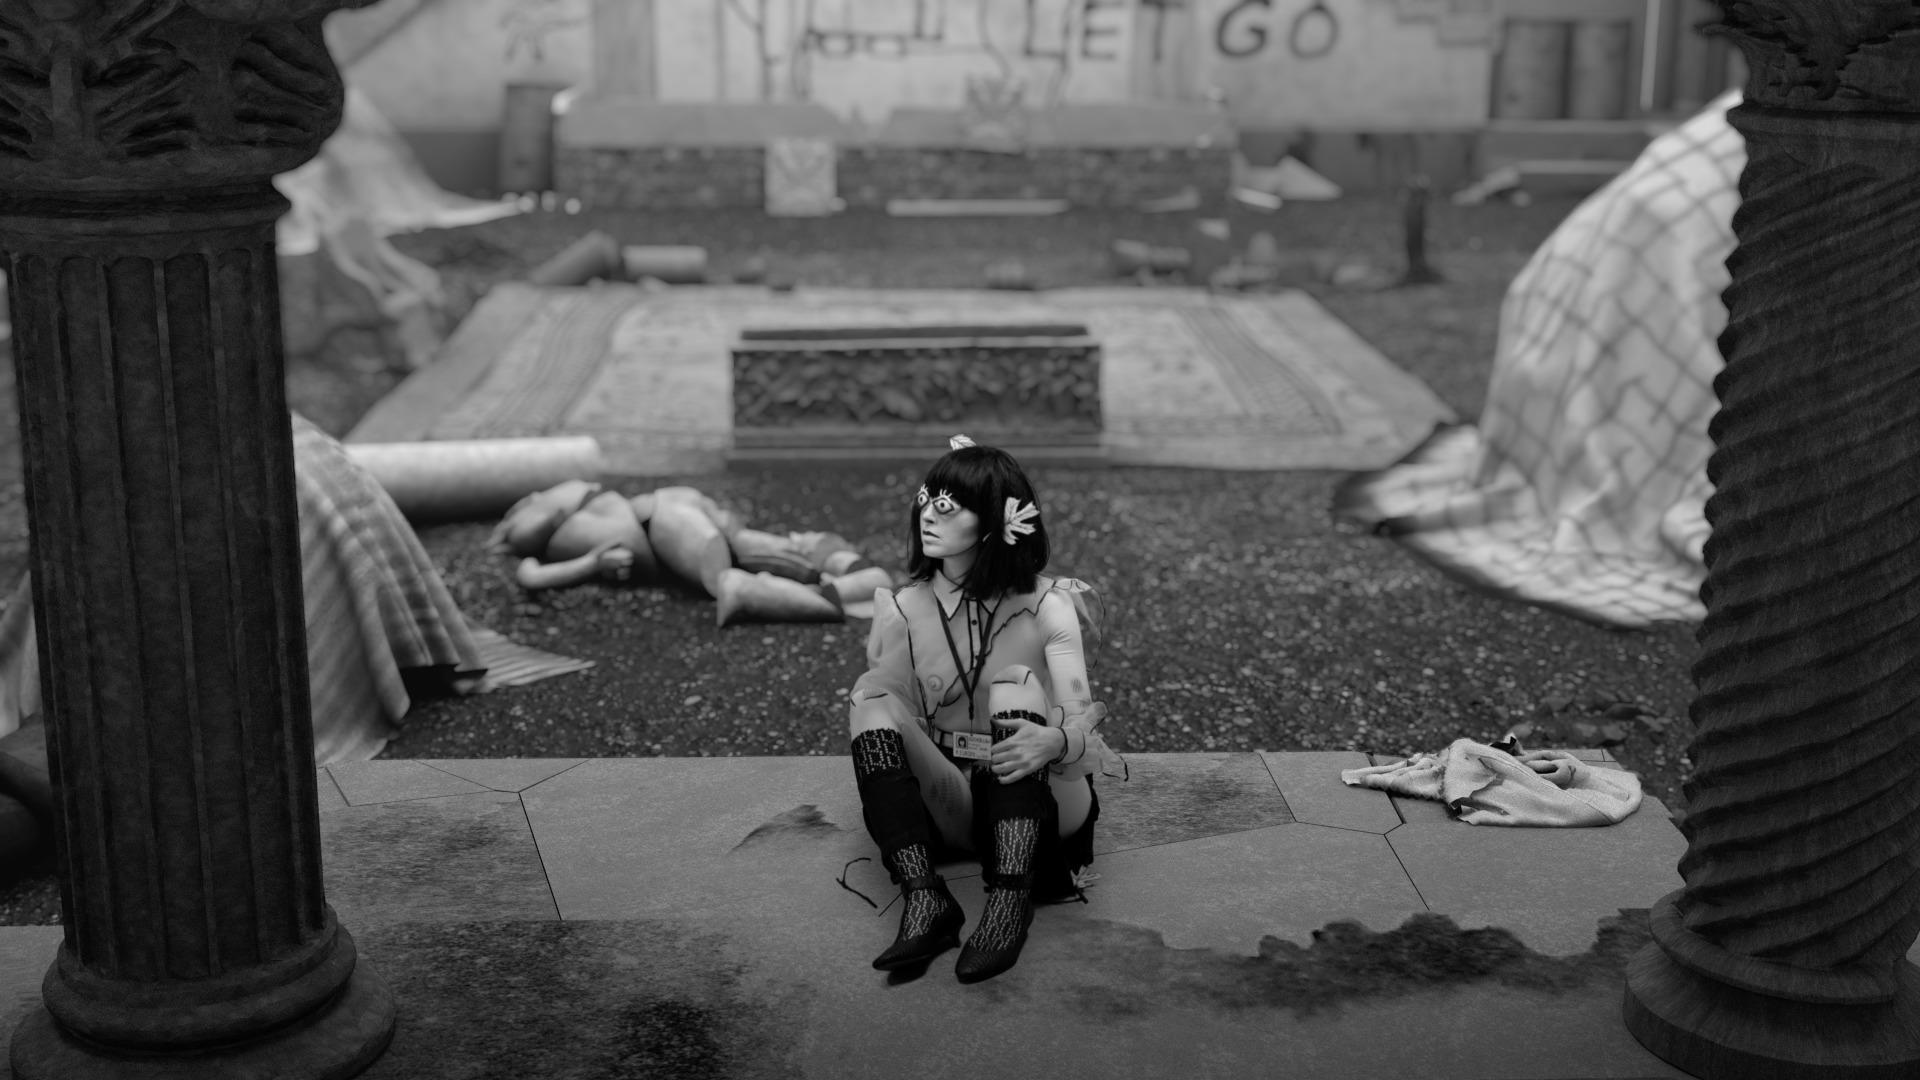 A clip from The Rape of Europa film with Europa sitting on a floor.